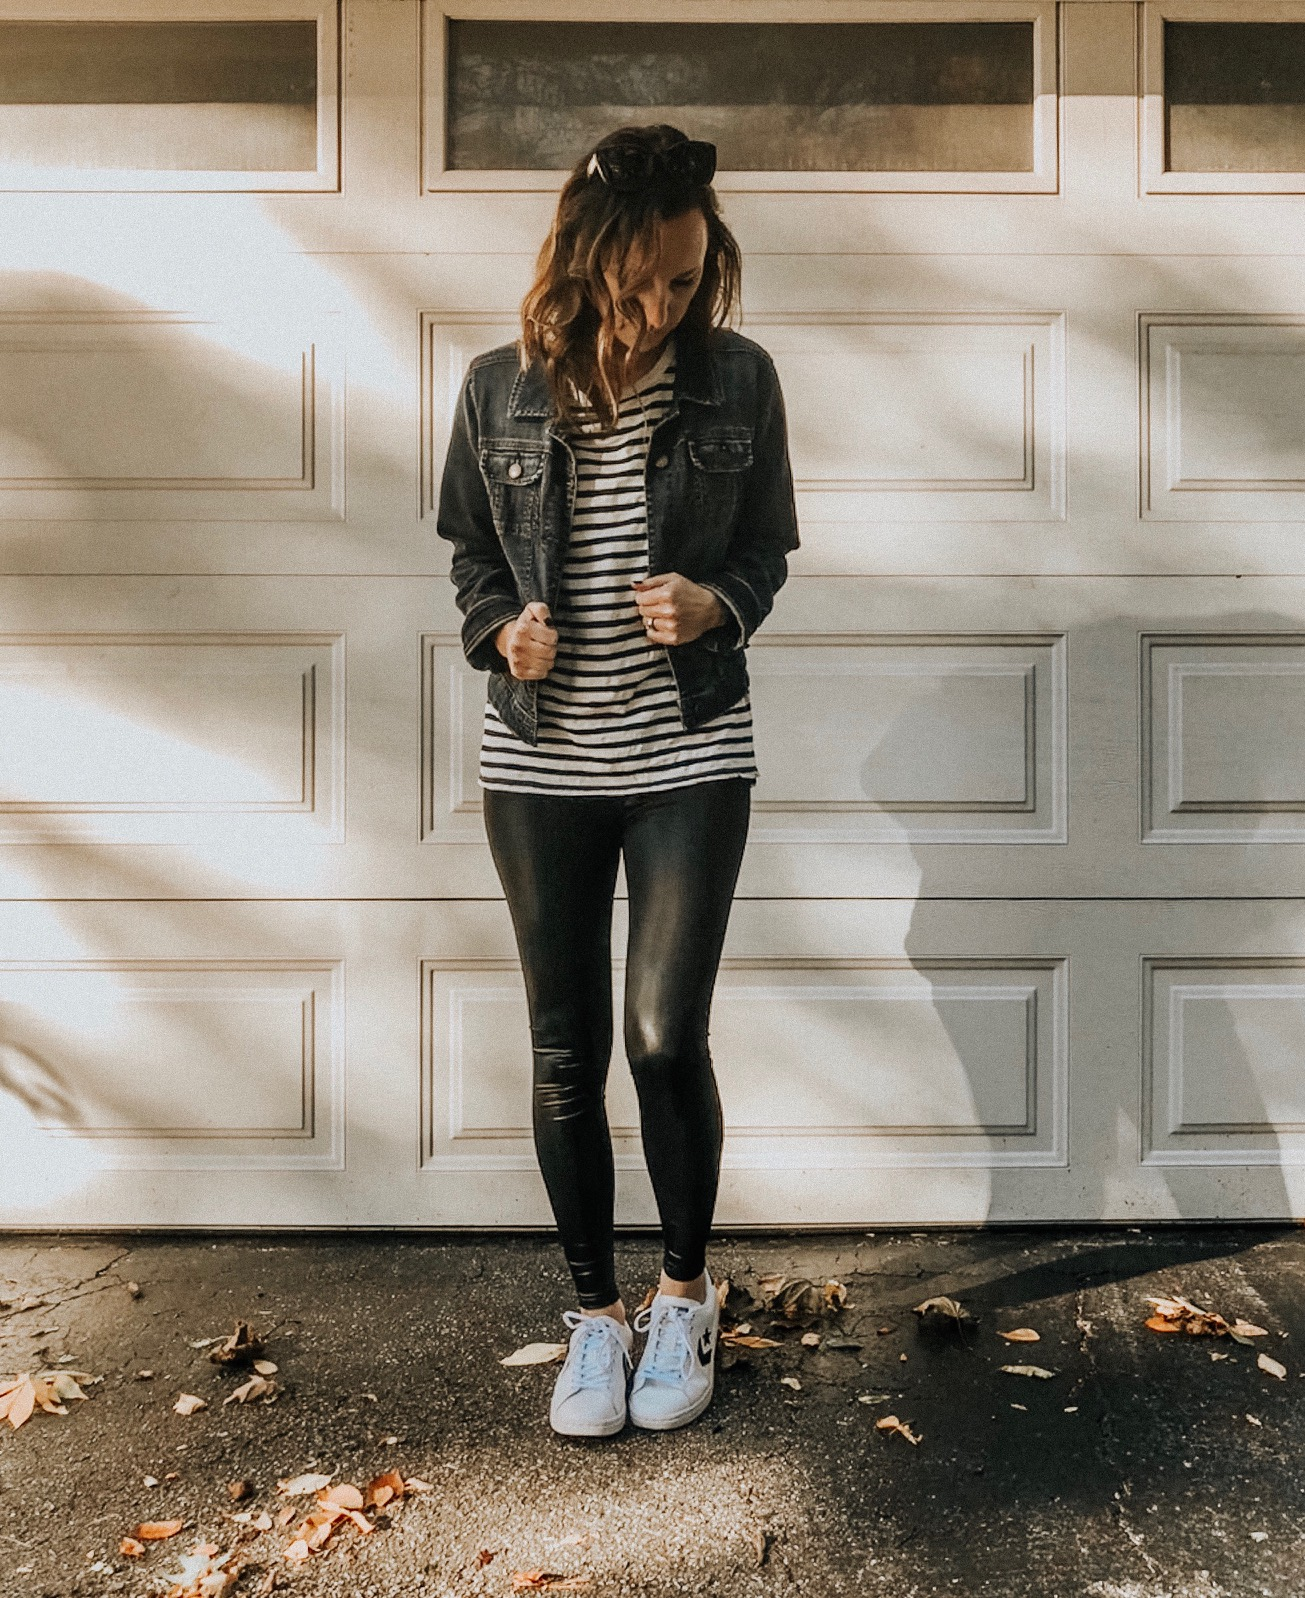 Fall Instagram Favorites | Daily Splendor Life and Style Blog | Faux leather leggings, striped top, denim jacket and sneakers #fauxleather #casualstyle #casualoutfit #momstyle #everydayfashion #fallstyle #fallneutrals